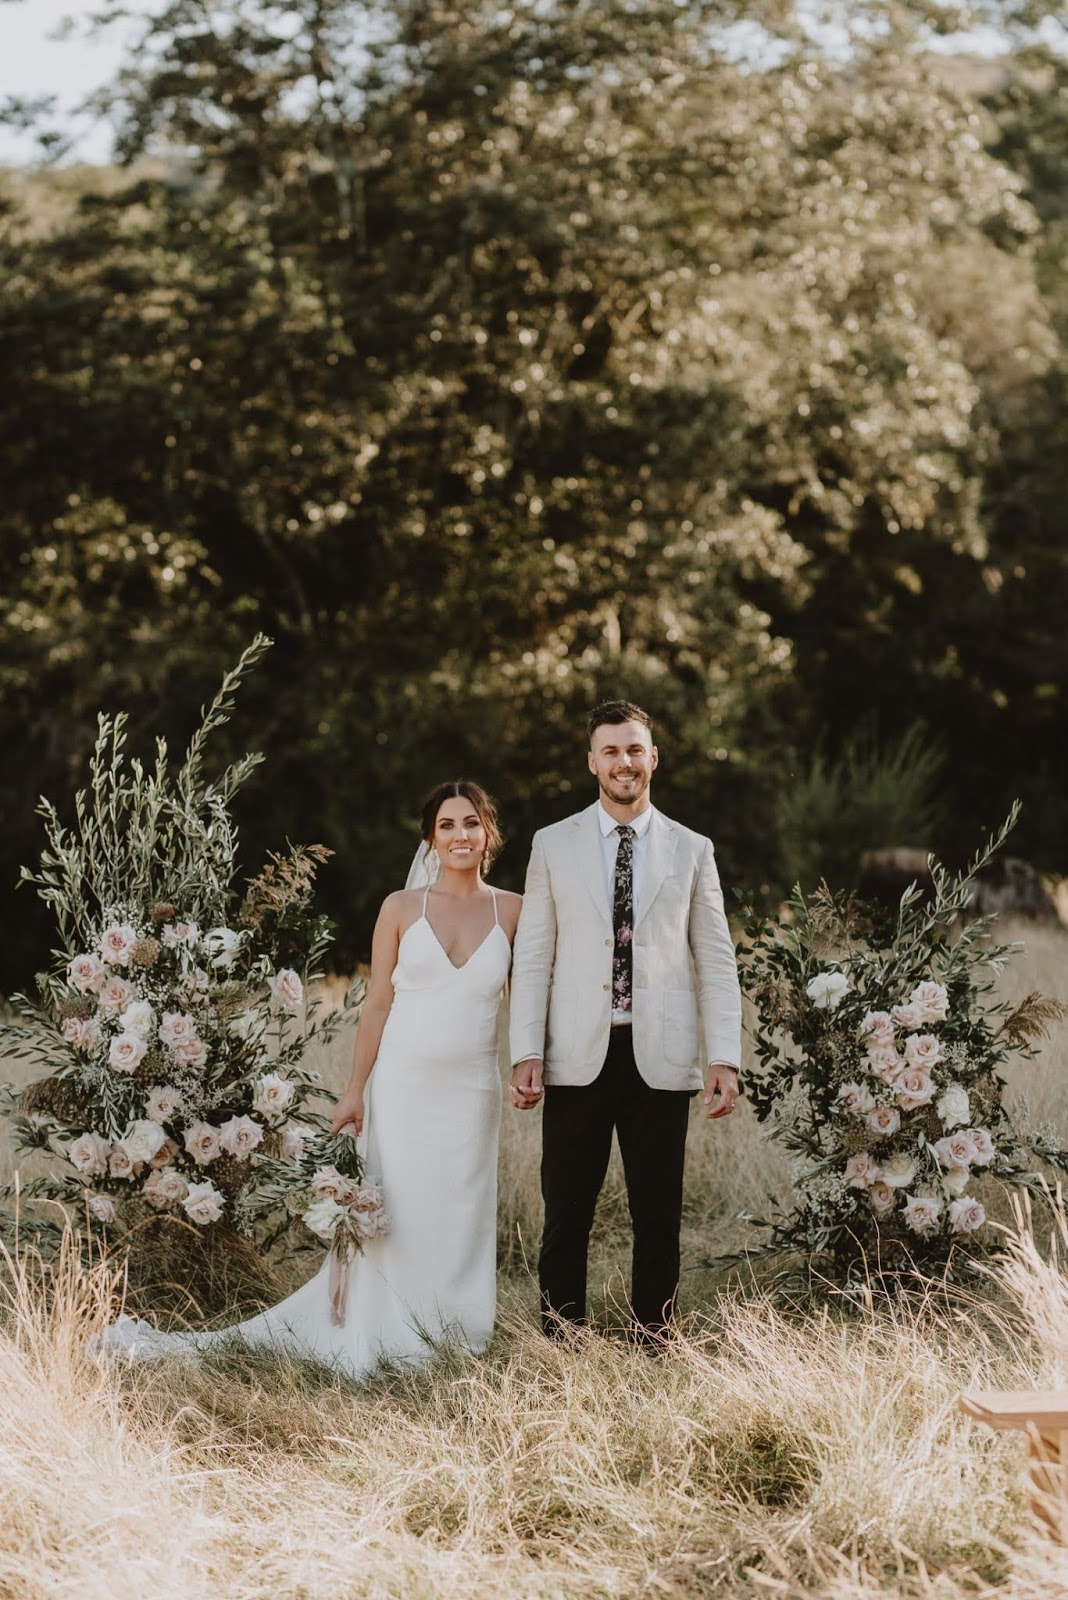 woodlands creative photography real weddings floral design bridal gowns love micro-wedding to the aisle australia